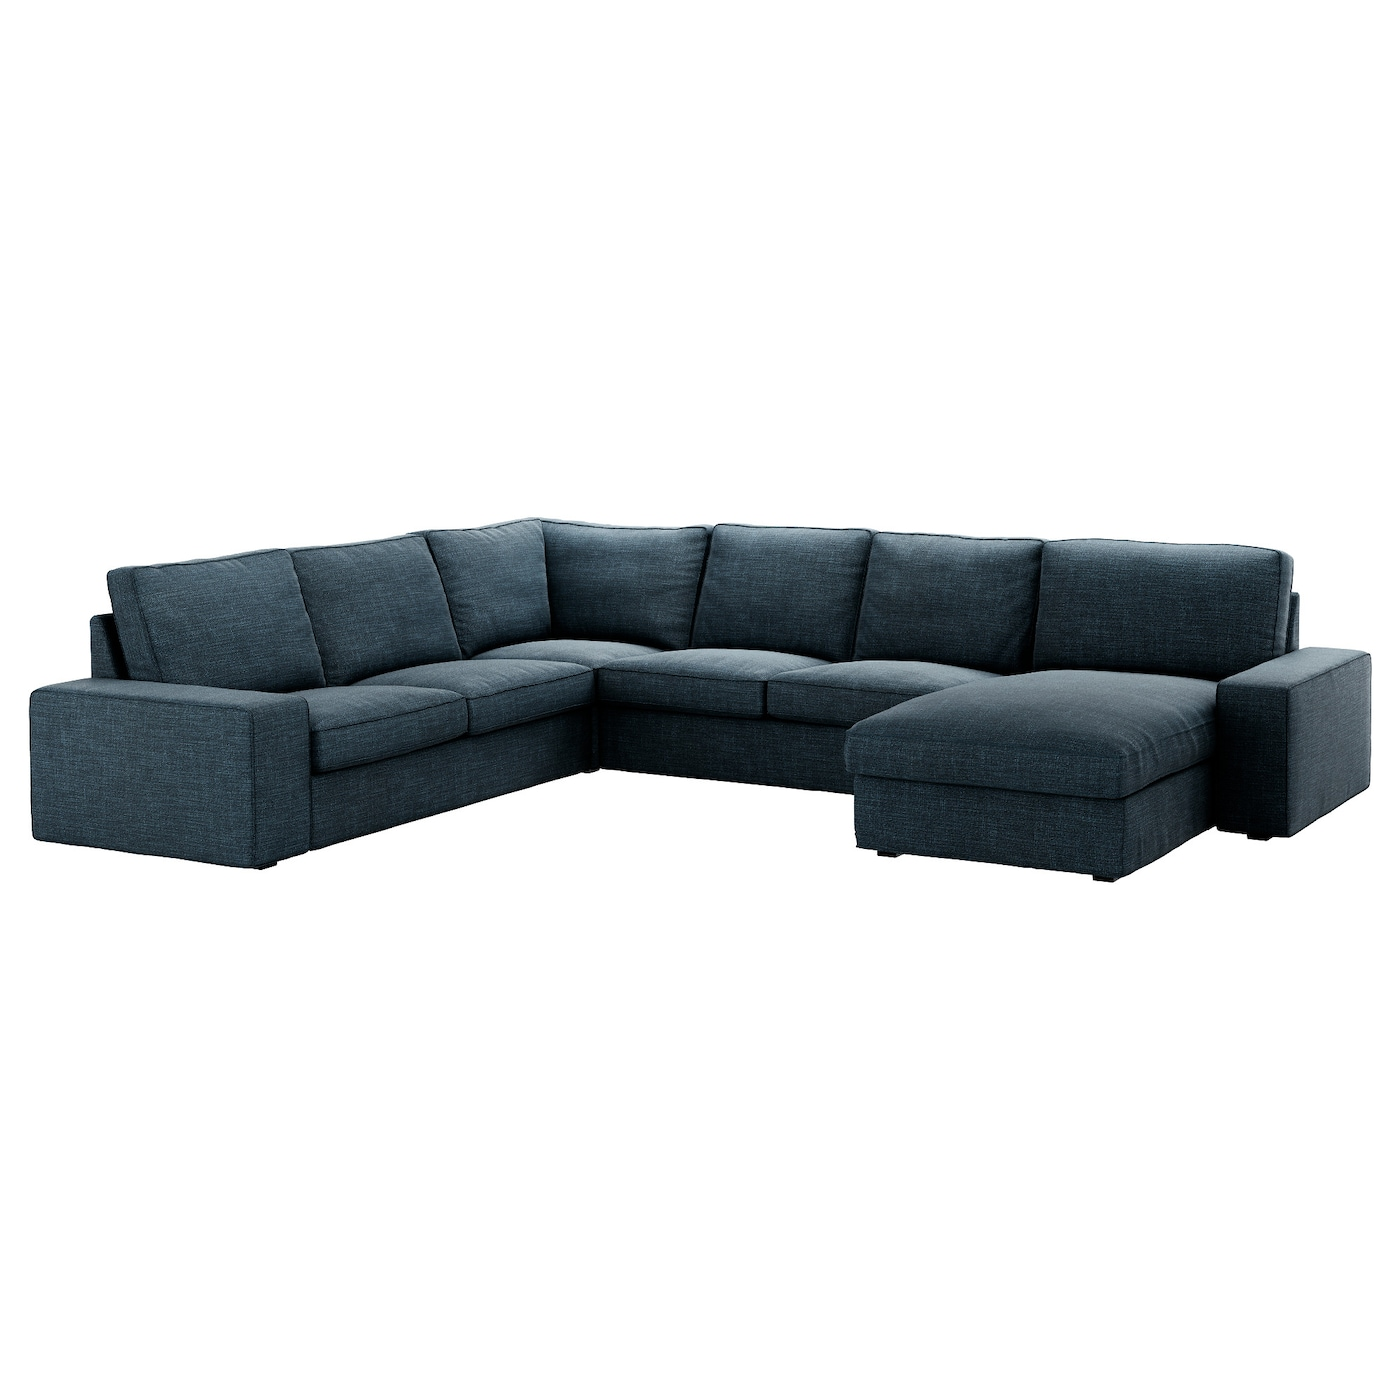 kivik corner sofa 5 seat with chaise longue hillared dark